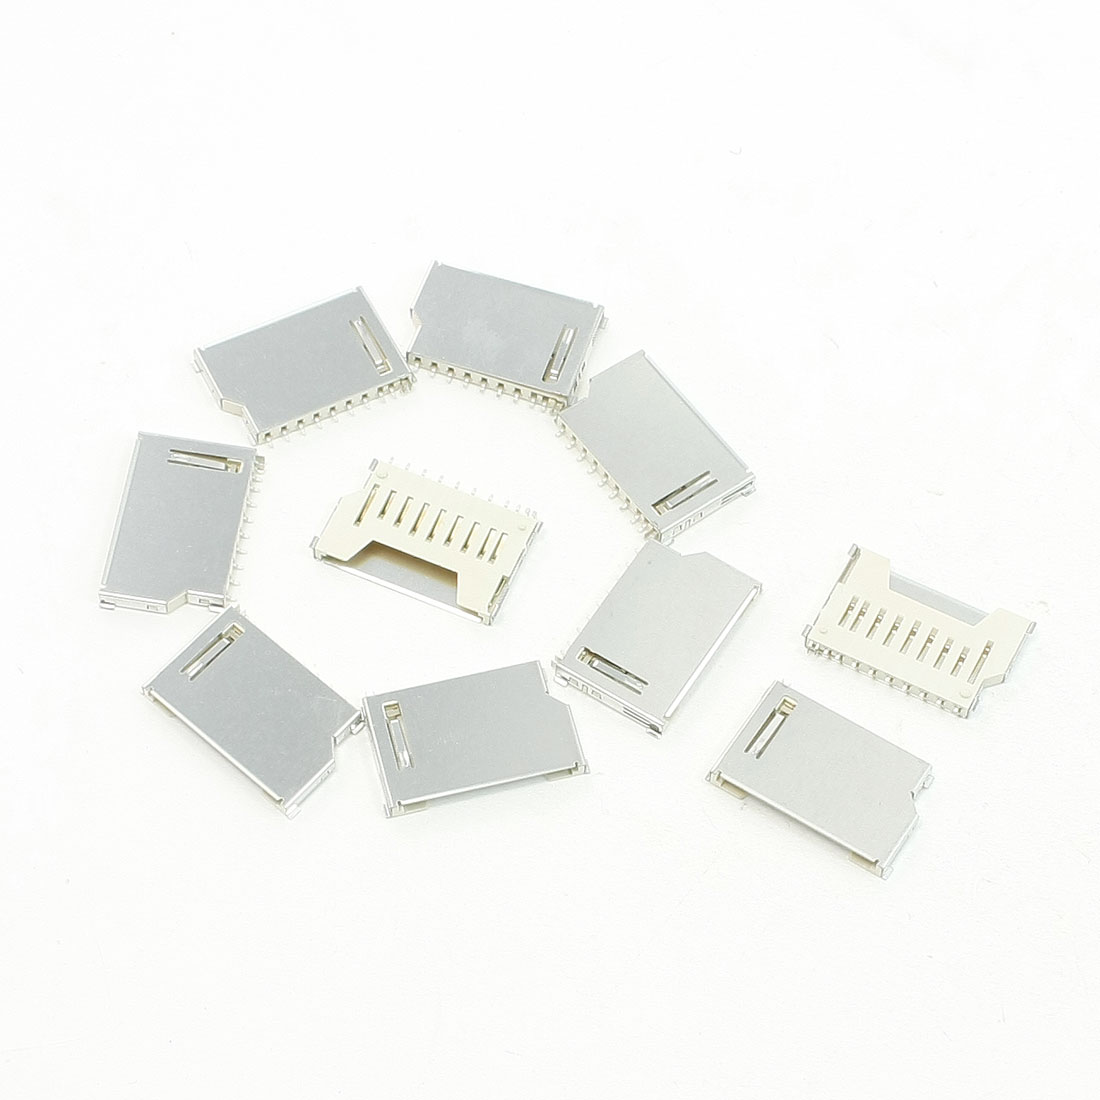 10 Pcs SD Card Sockets Connectors Replacements 16 x 26 x 2.5mm